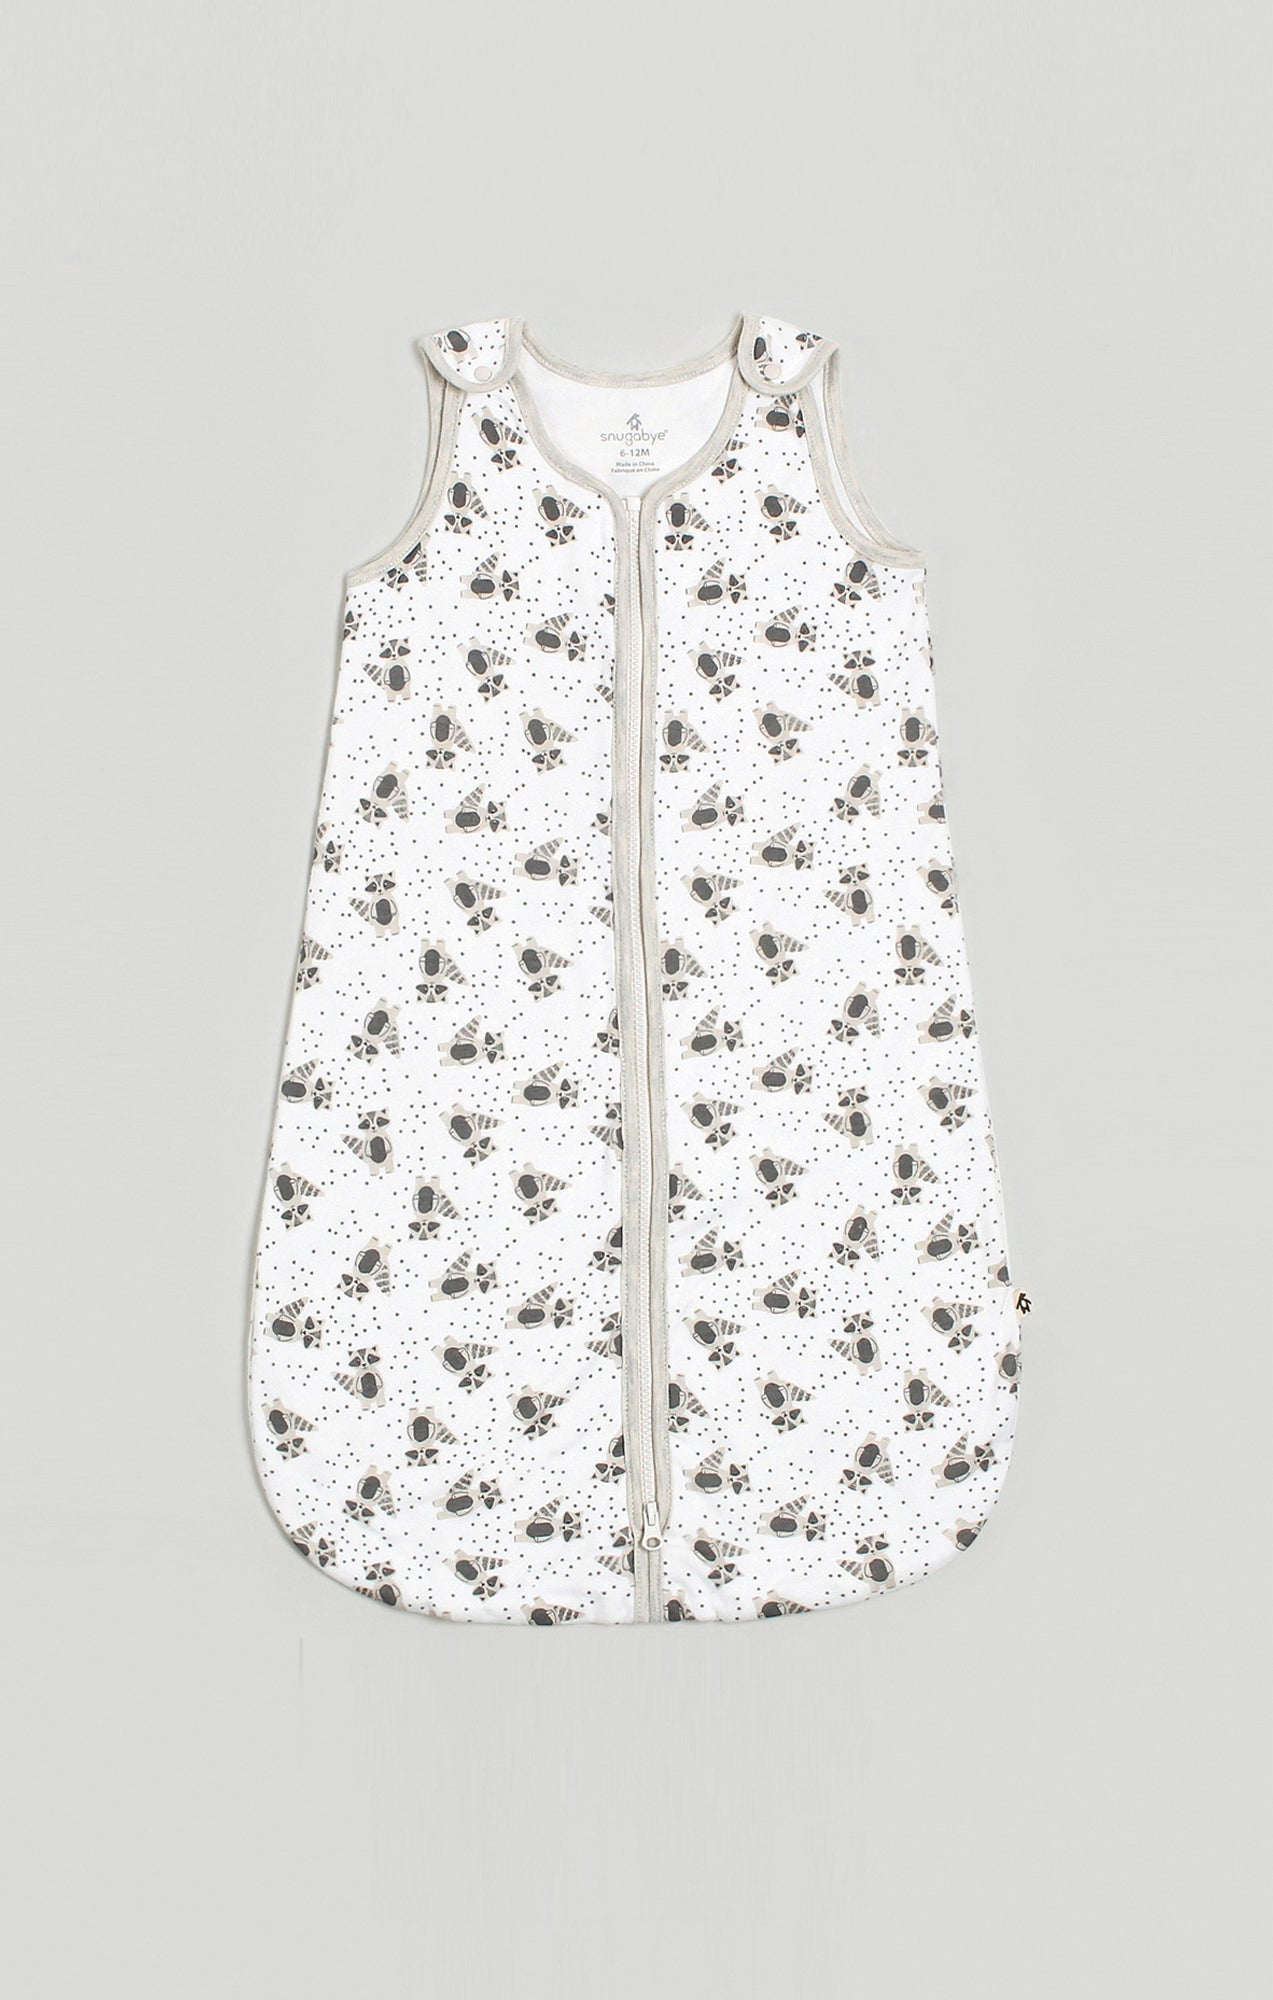 Baby Sleep Sack - Raccoon Sleep Bag